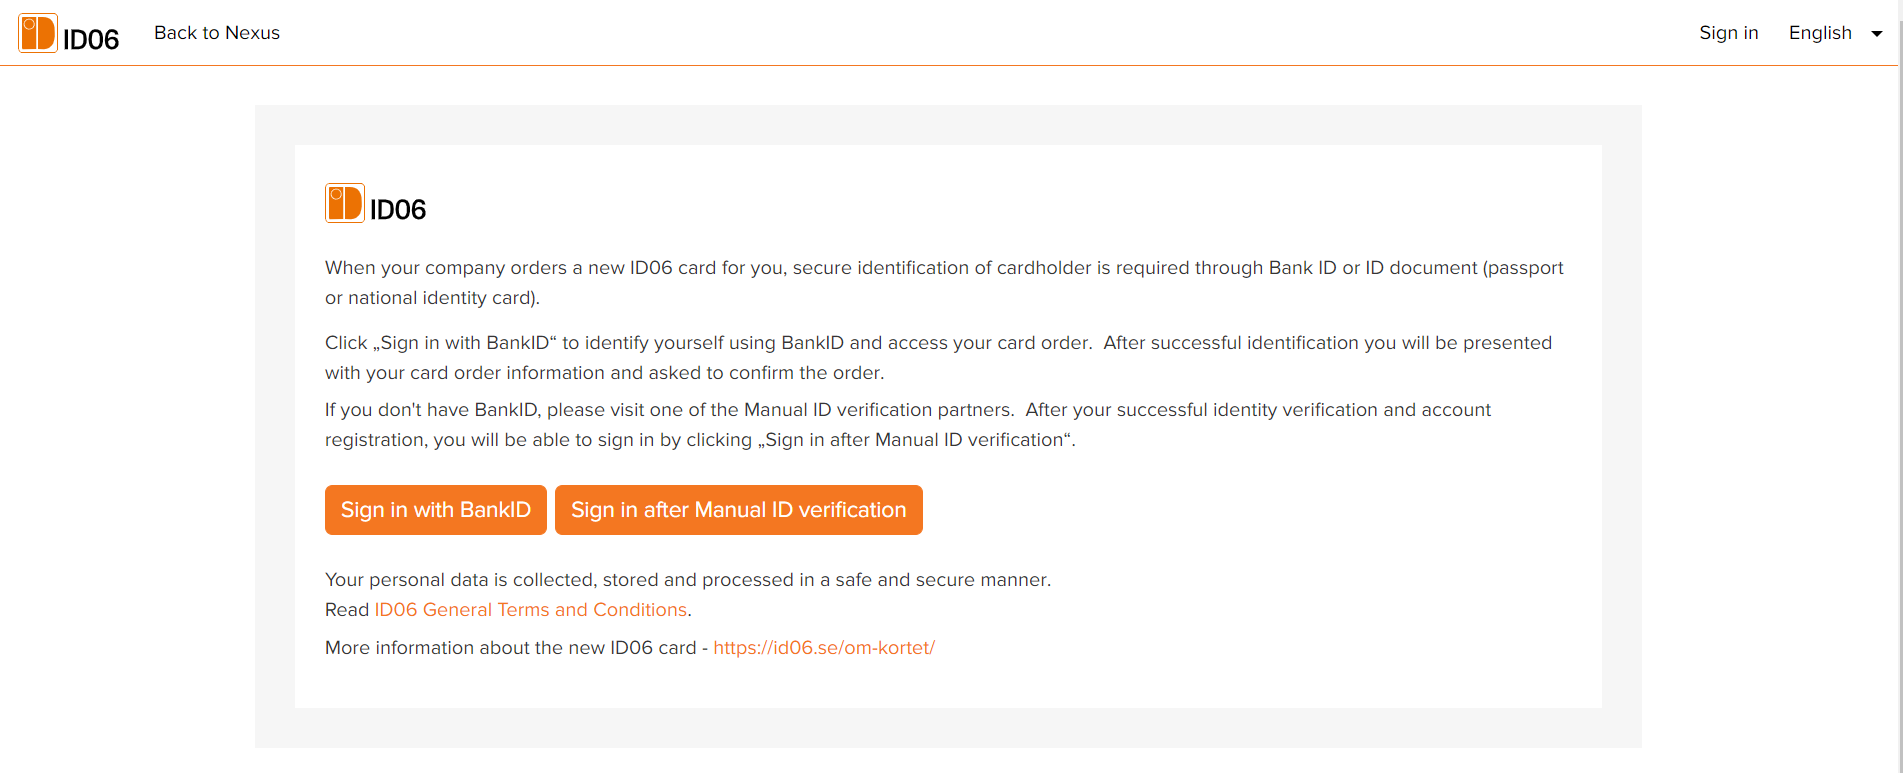 Sign in after manual ID verification